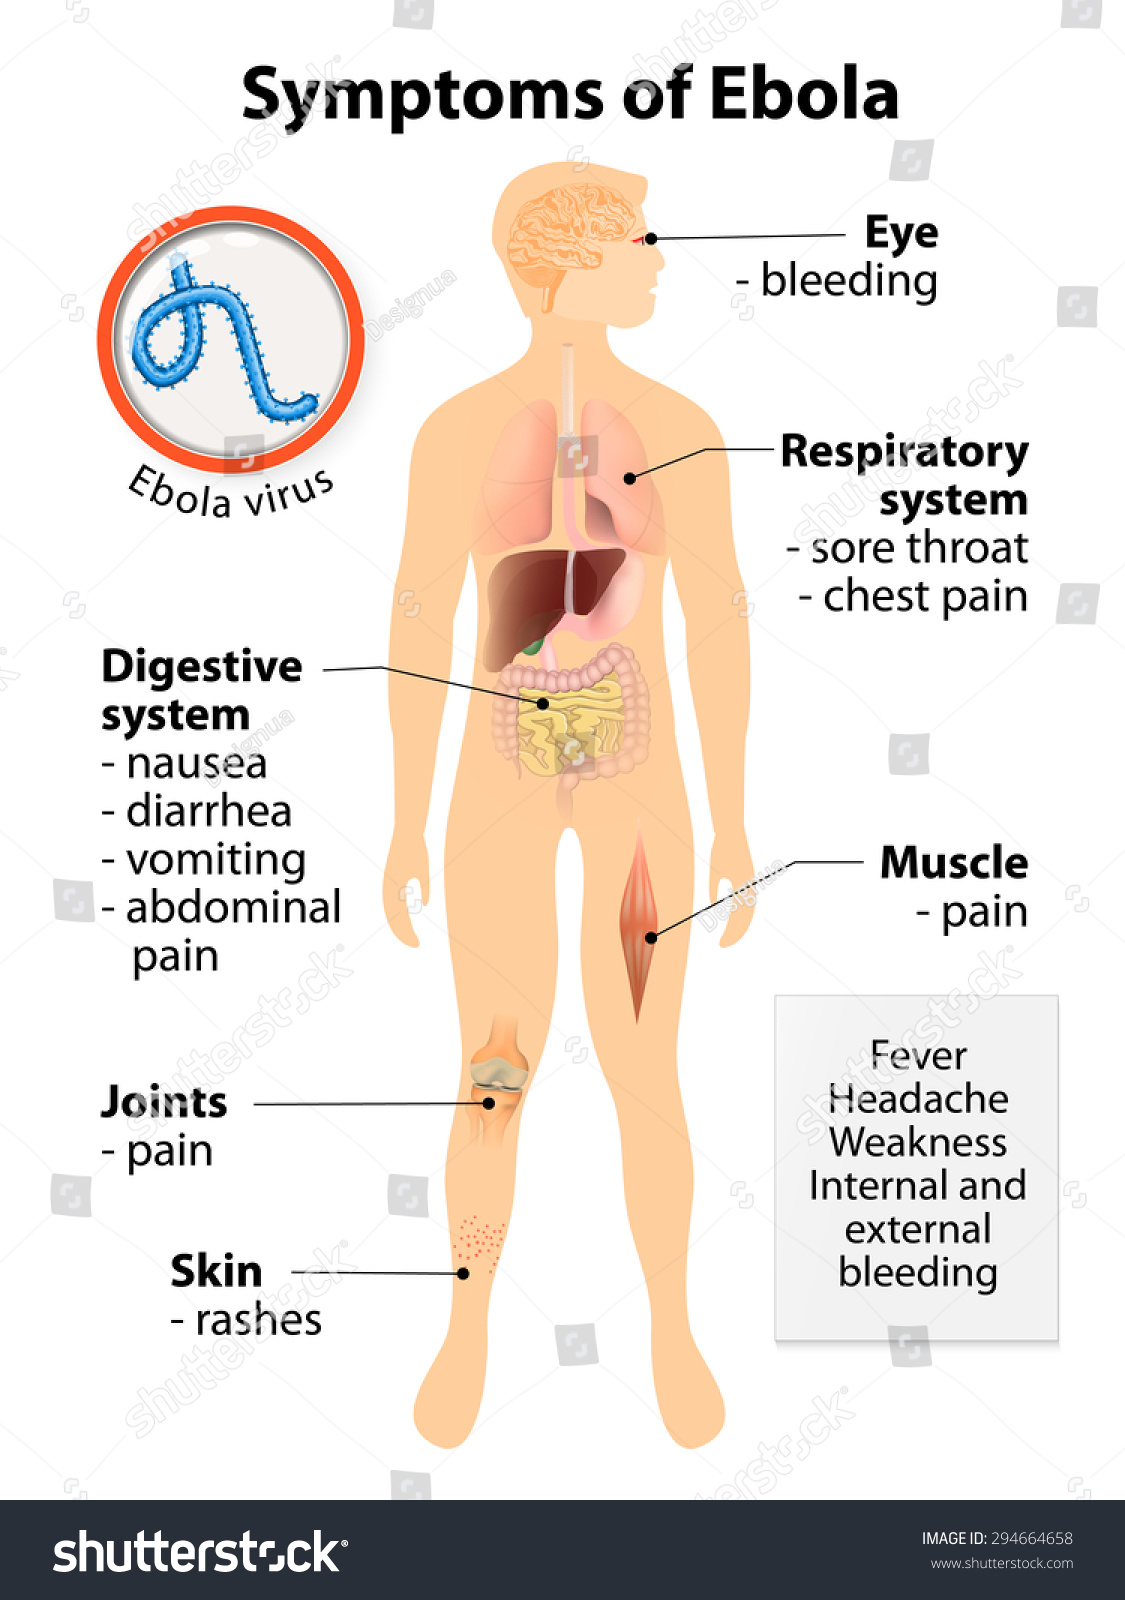 the symptoms of ebola virus an infectious disease They are also easily confused with symptoms of other infectious diseases that cause a high fever people with a history of ebola virus infection are deferred.